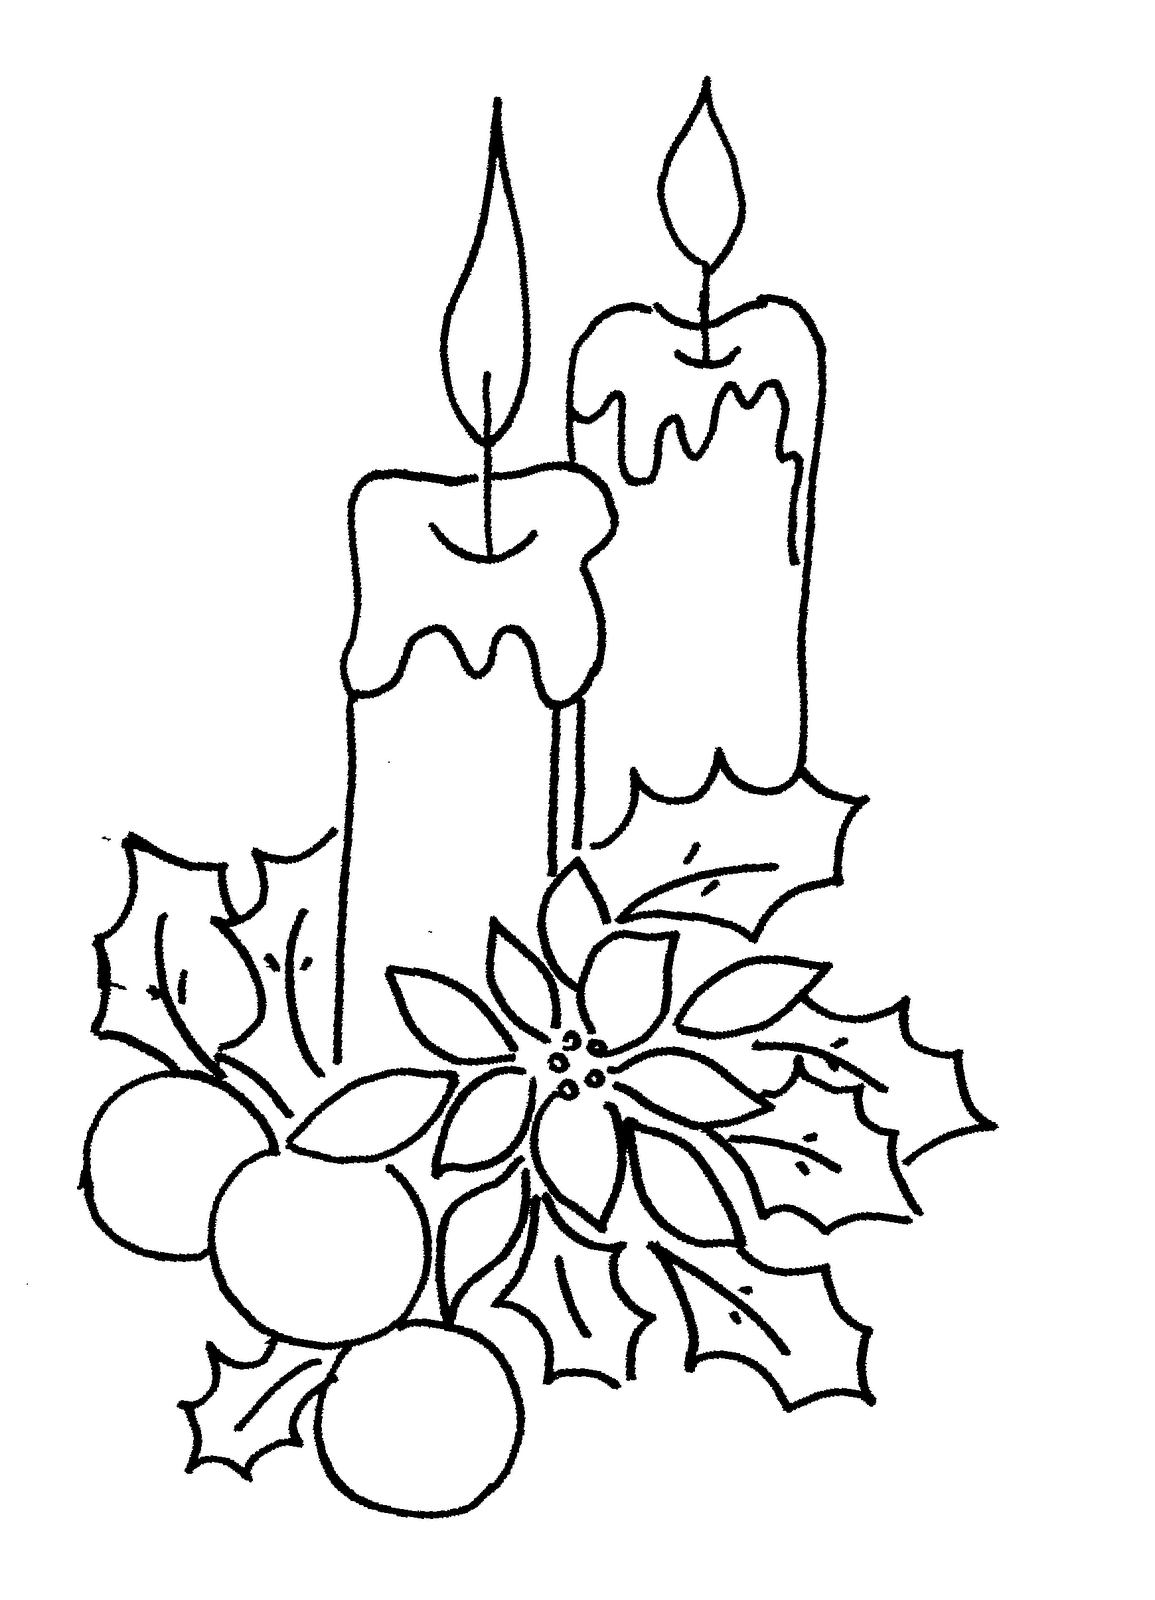 http://www.coloringnow.com/images/free-christmas-coloring-pages/free ...